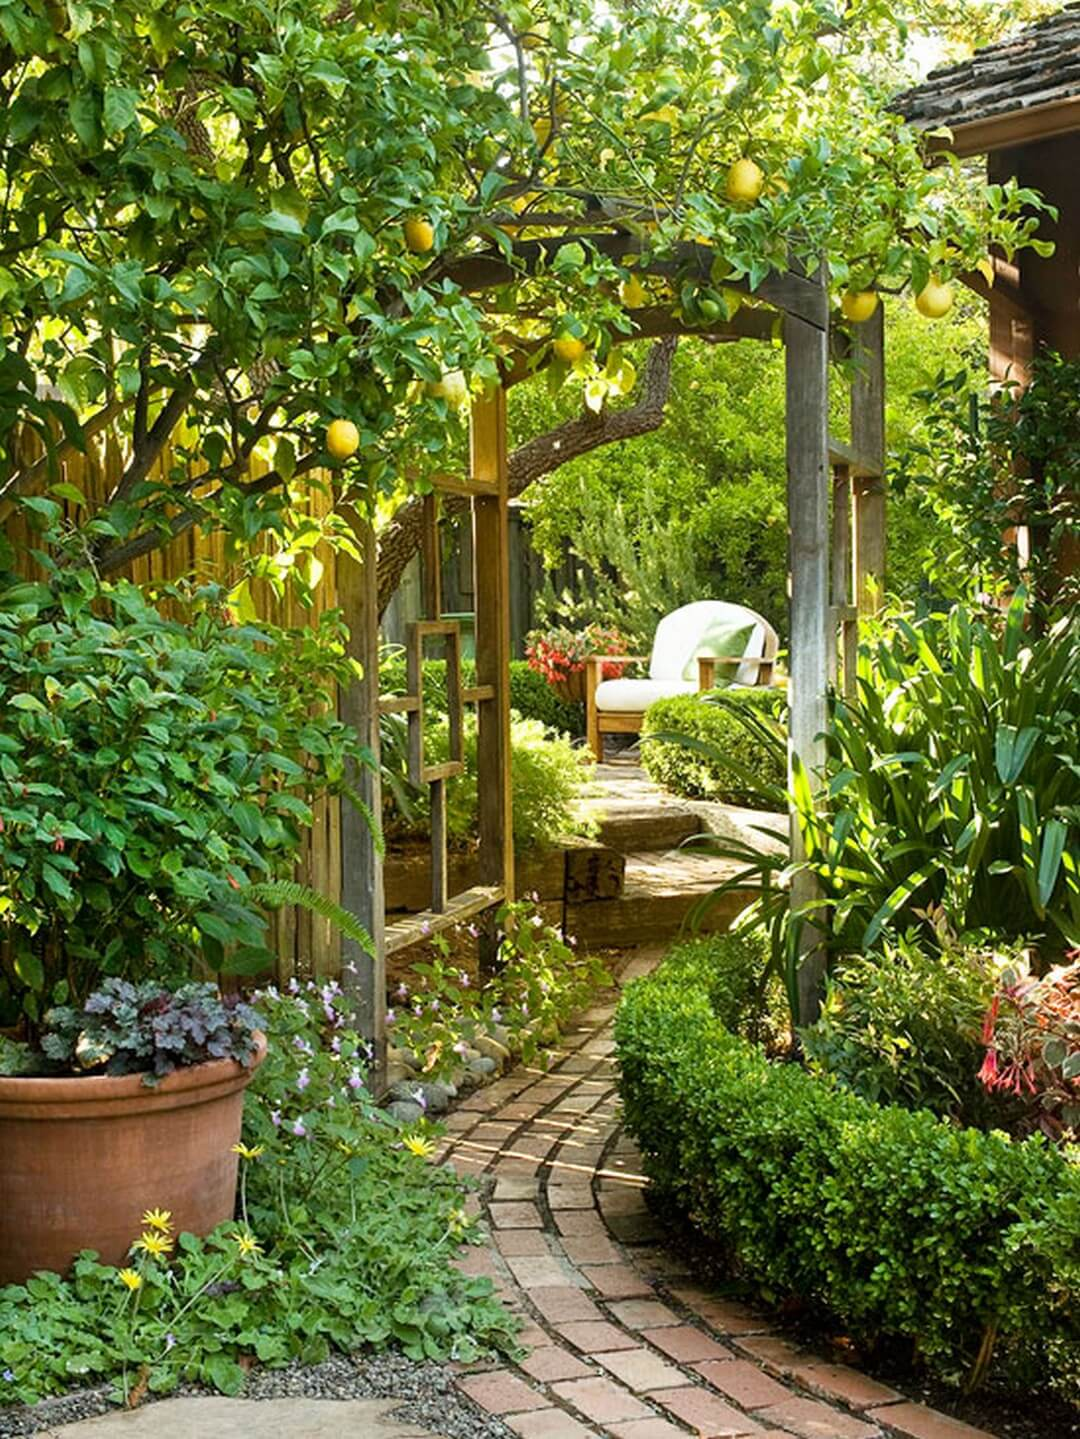 Curving Brick Path and Shady Seating